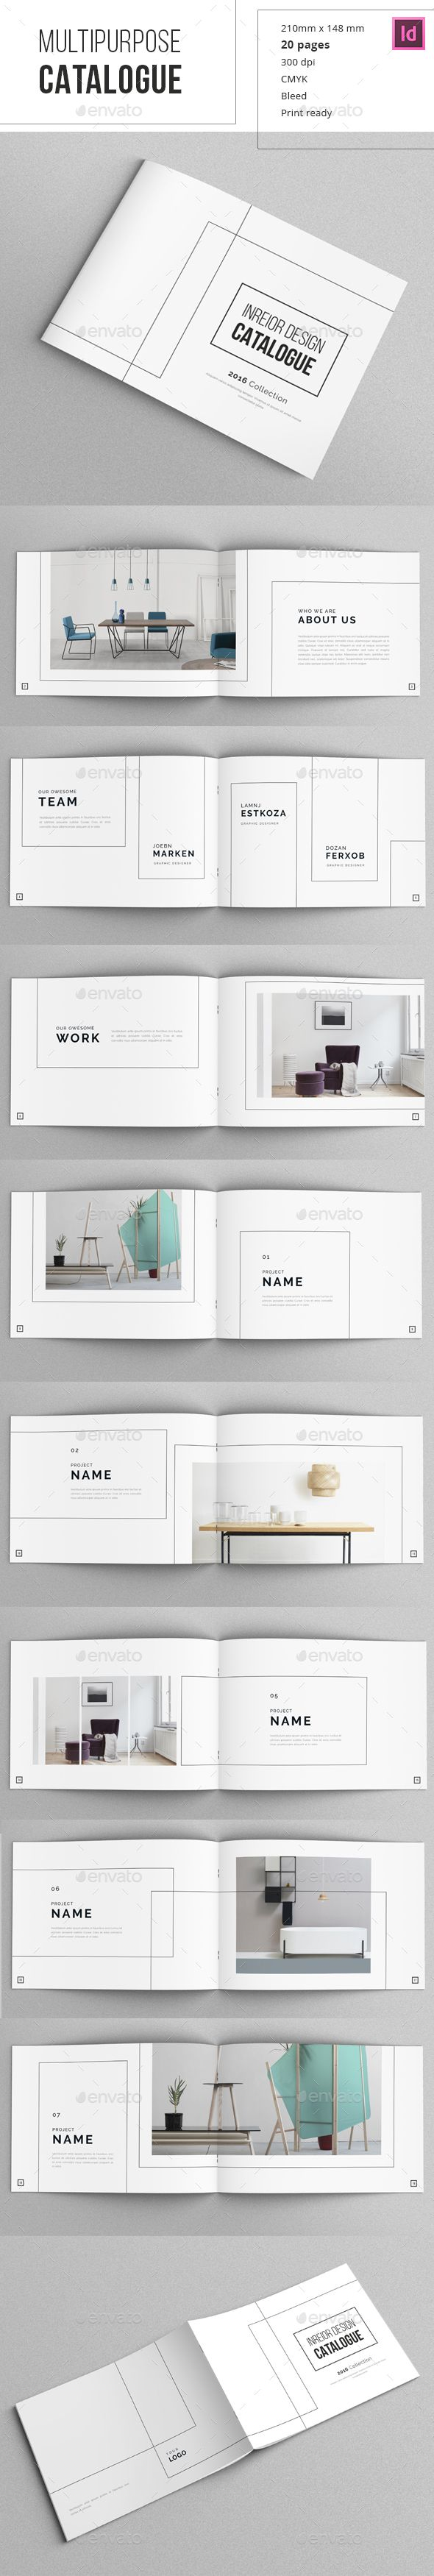 Minimal indesign catalogue the shape typography and for Indesign interior